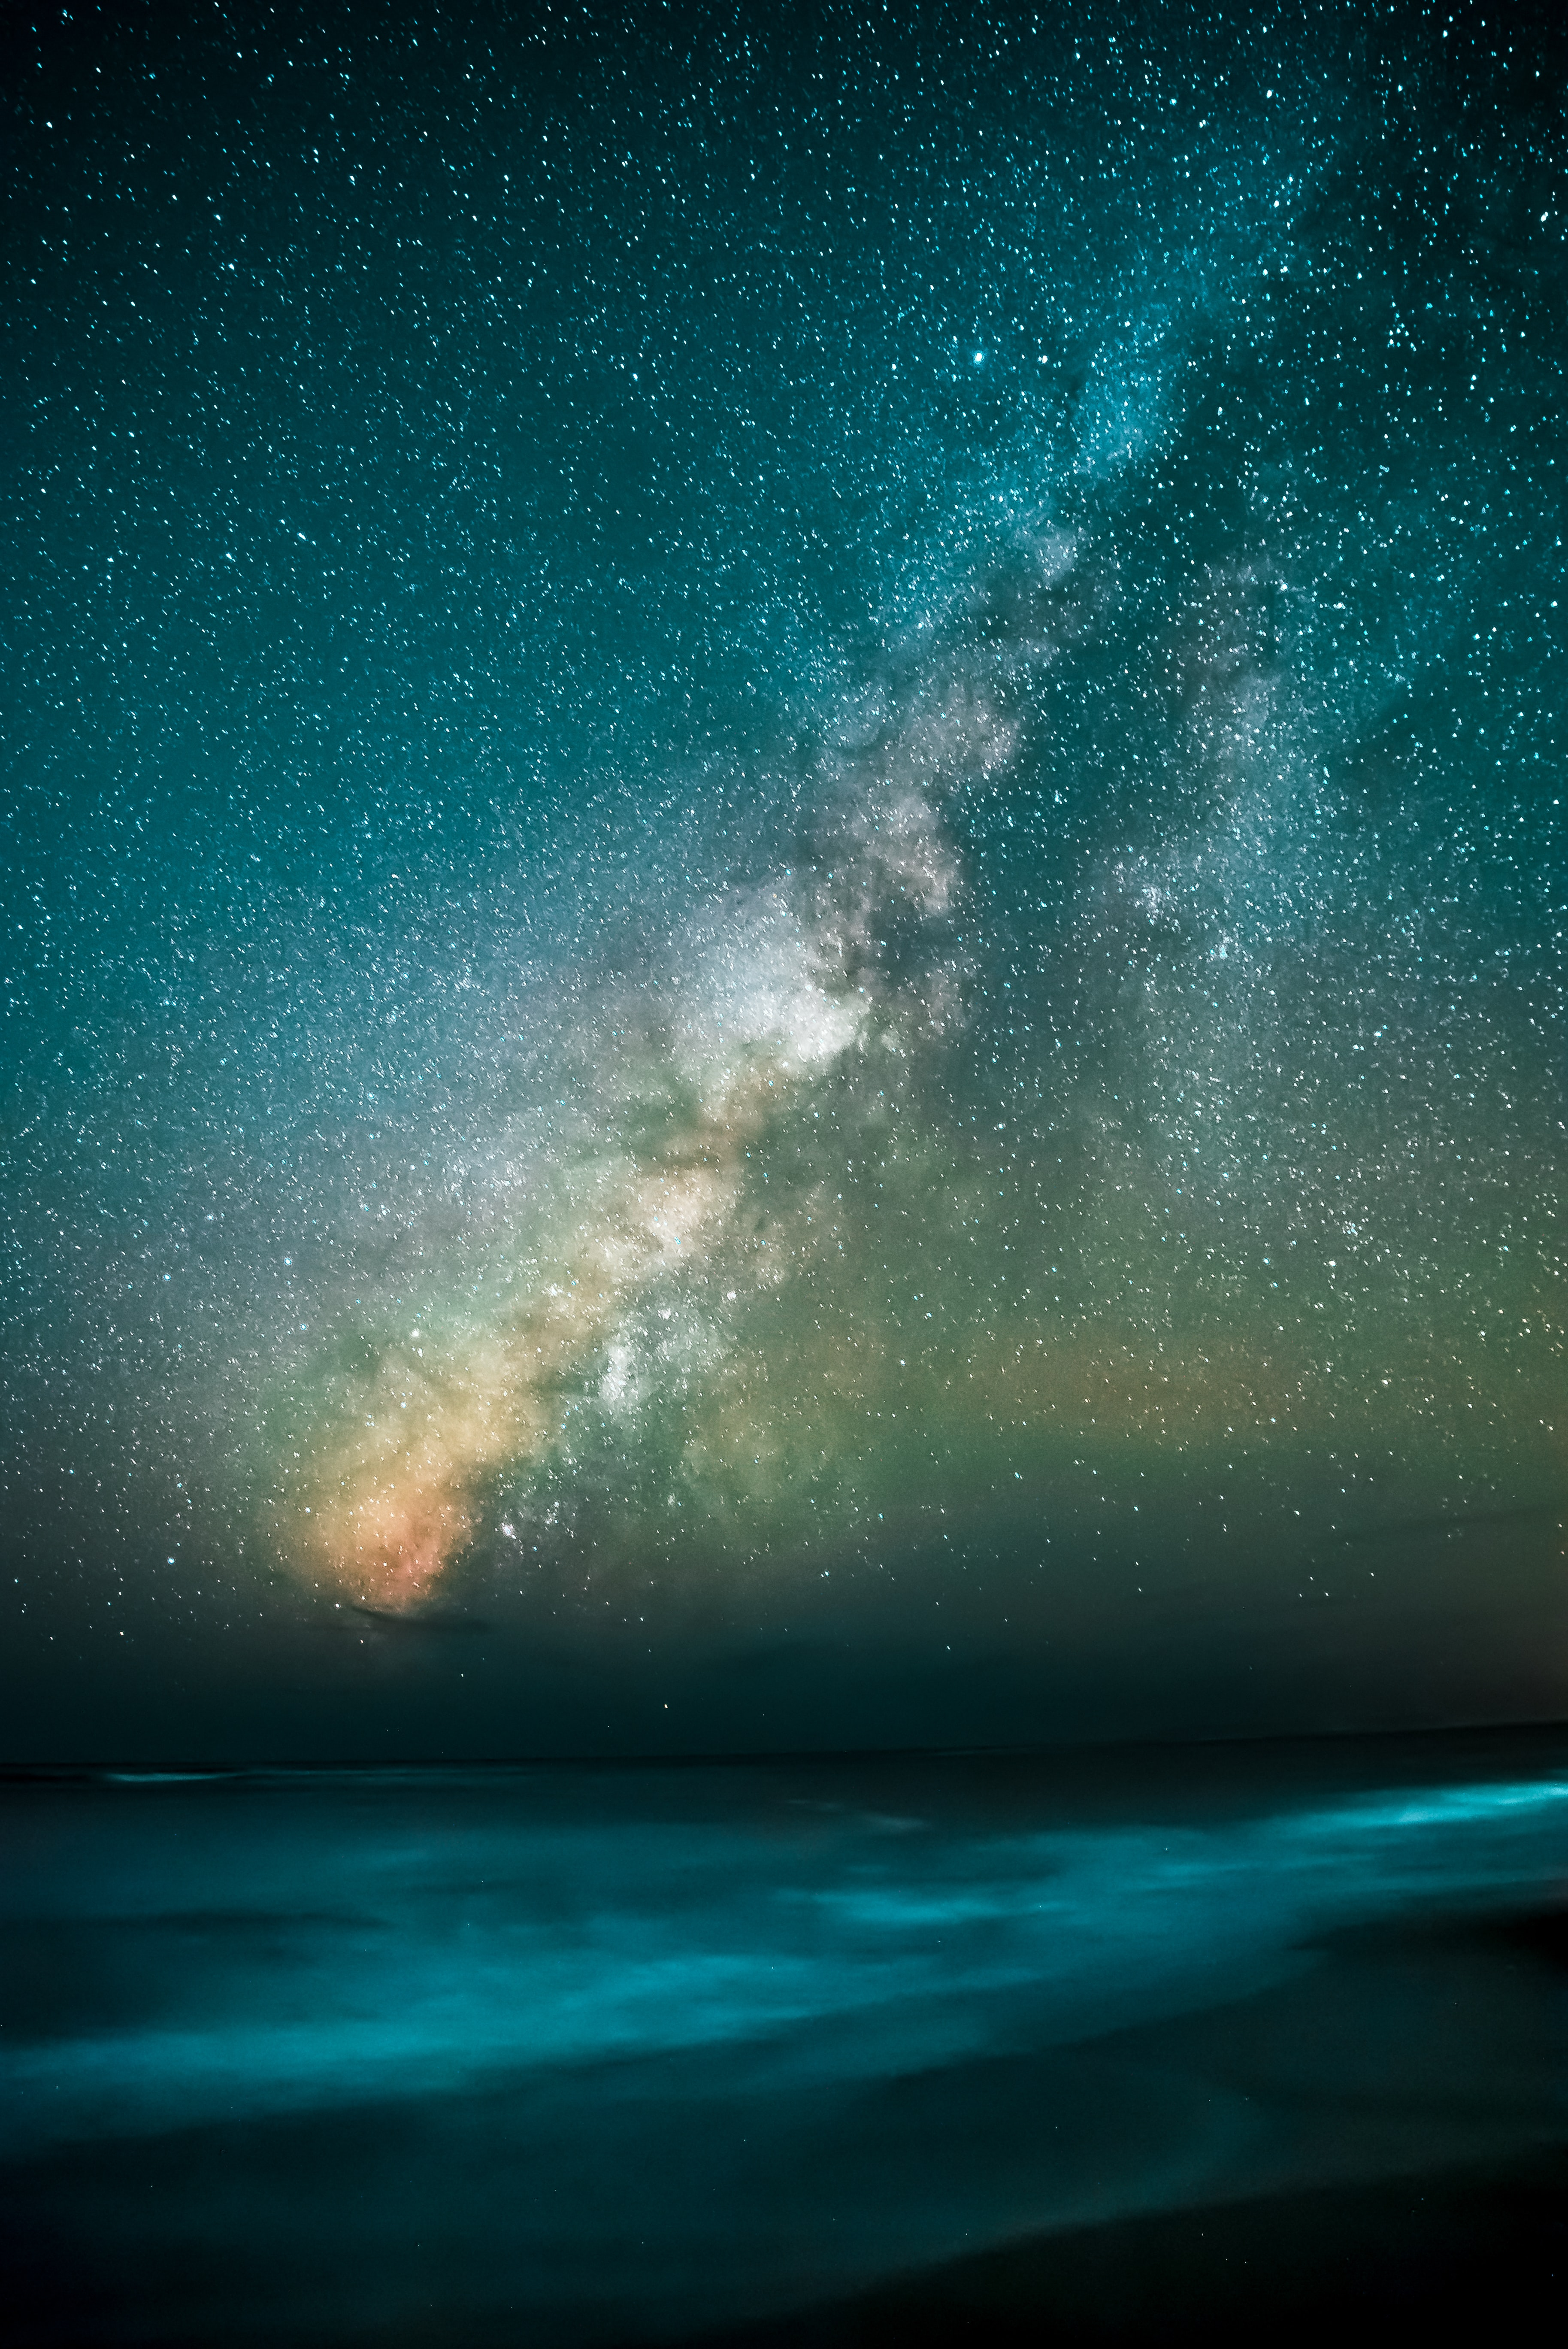 Milky way stars over the waves on the beach